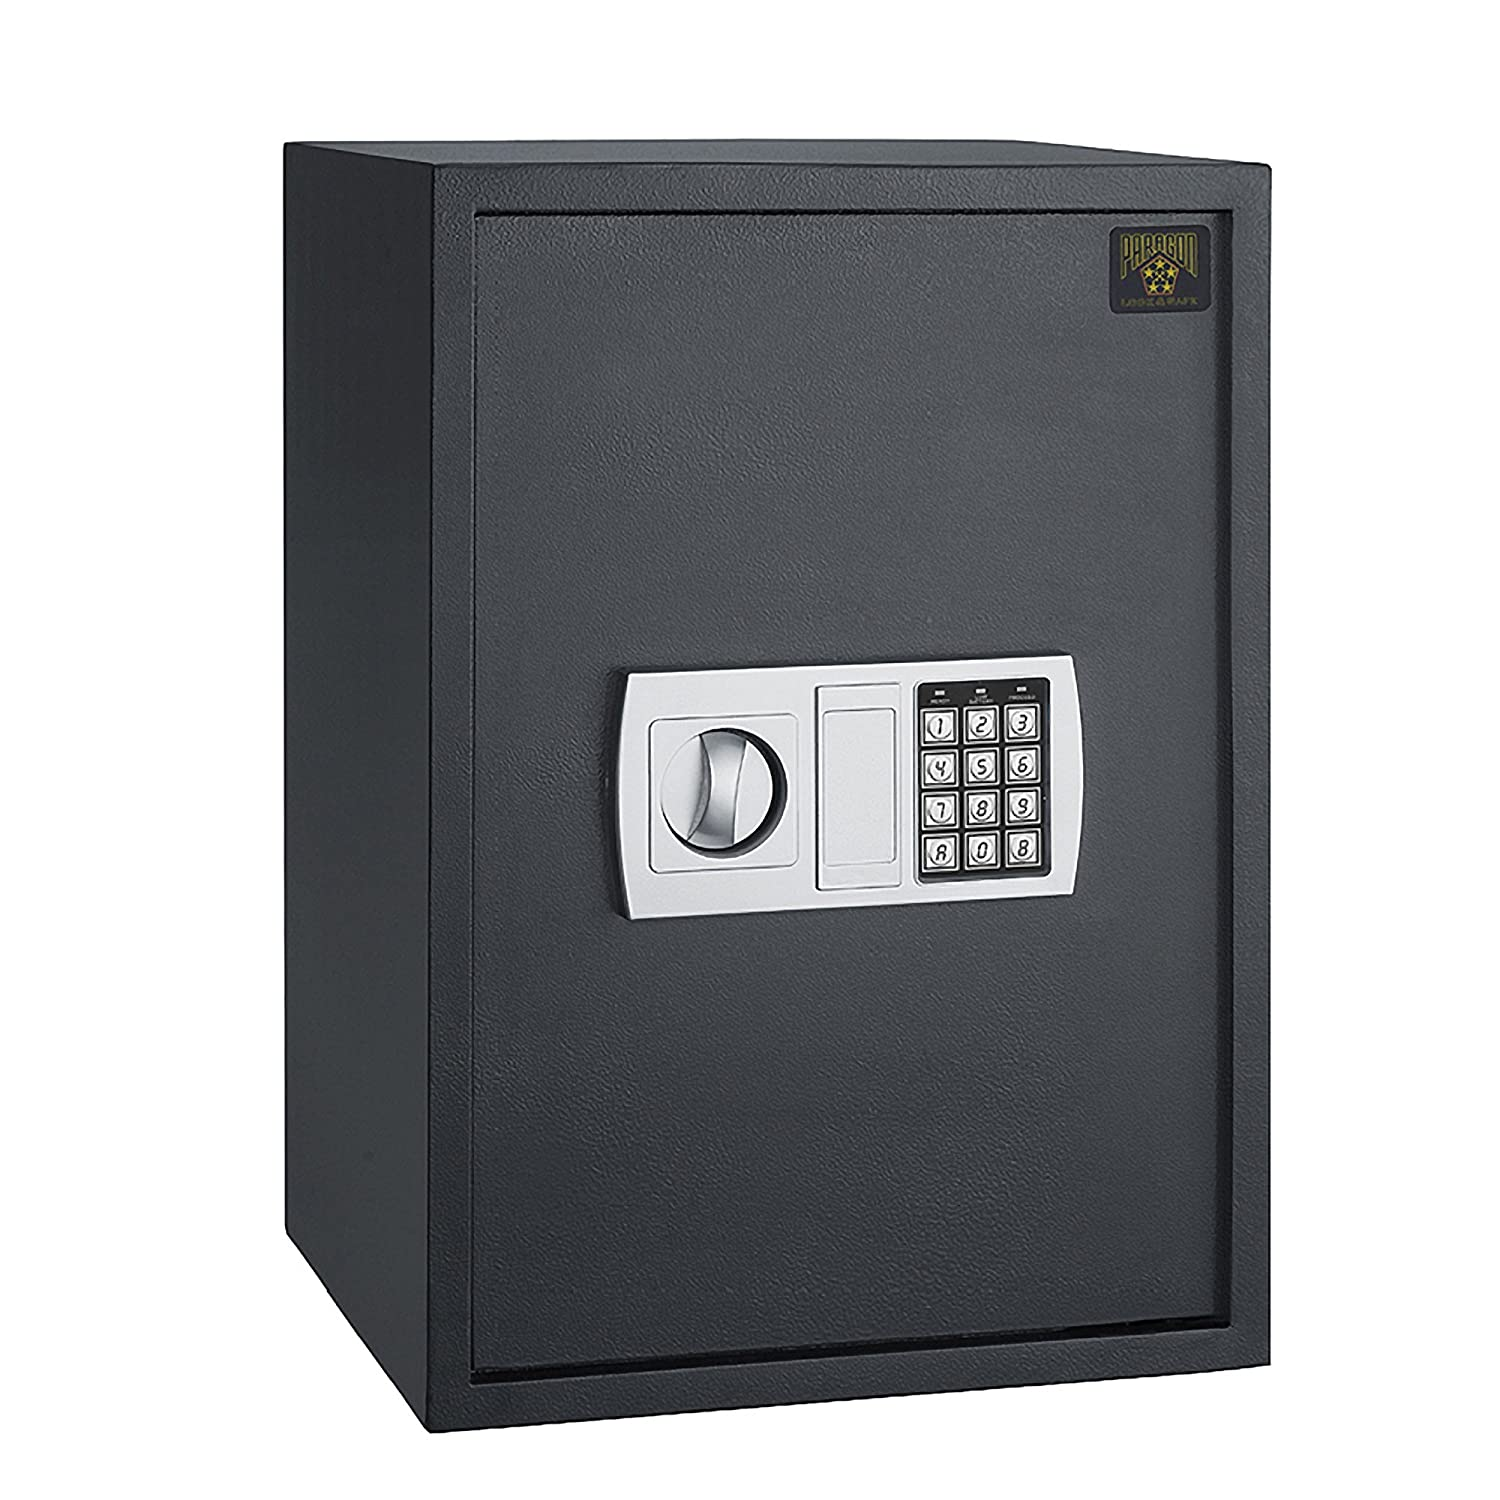 Image of Home Improvements 7775 1.8 CF Large Electronic Digital Safe Jewelry Home Secure-Paragon Lock & Safe